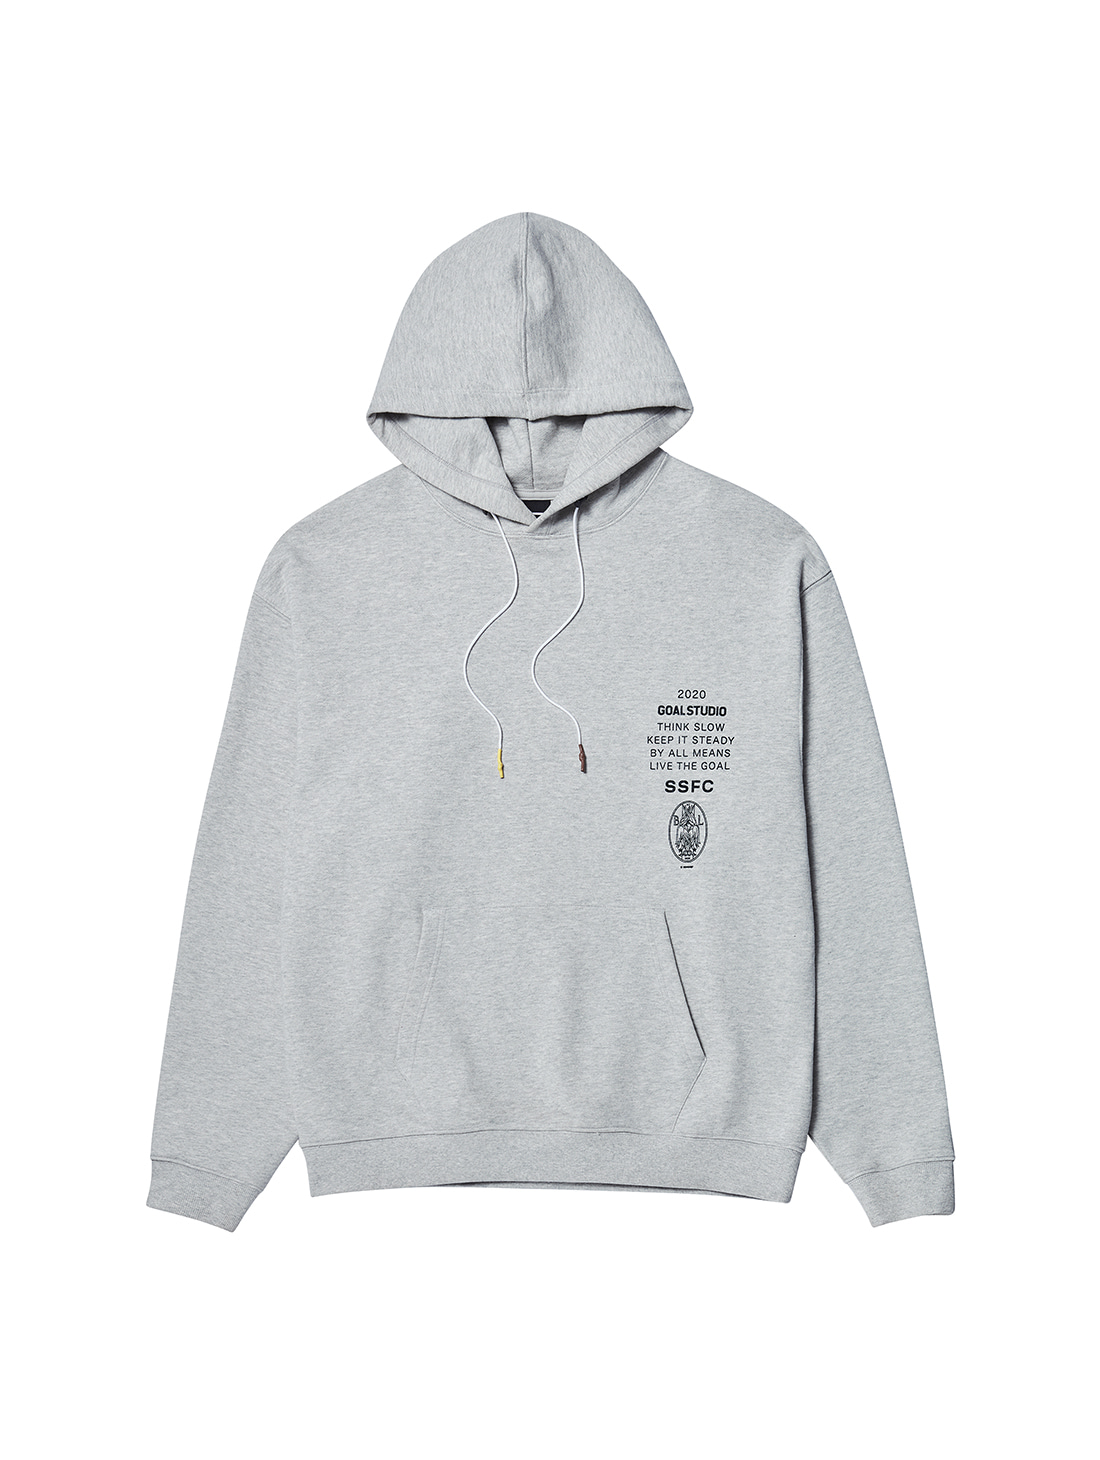 SSFC JERSEY HOODED SWEATSHIRT - GREY